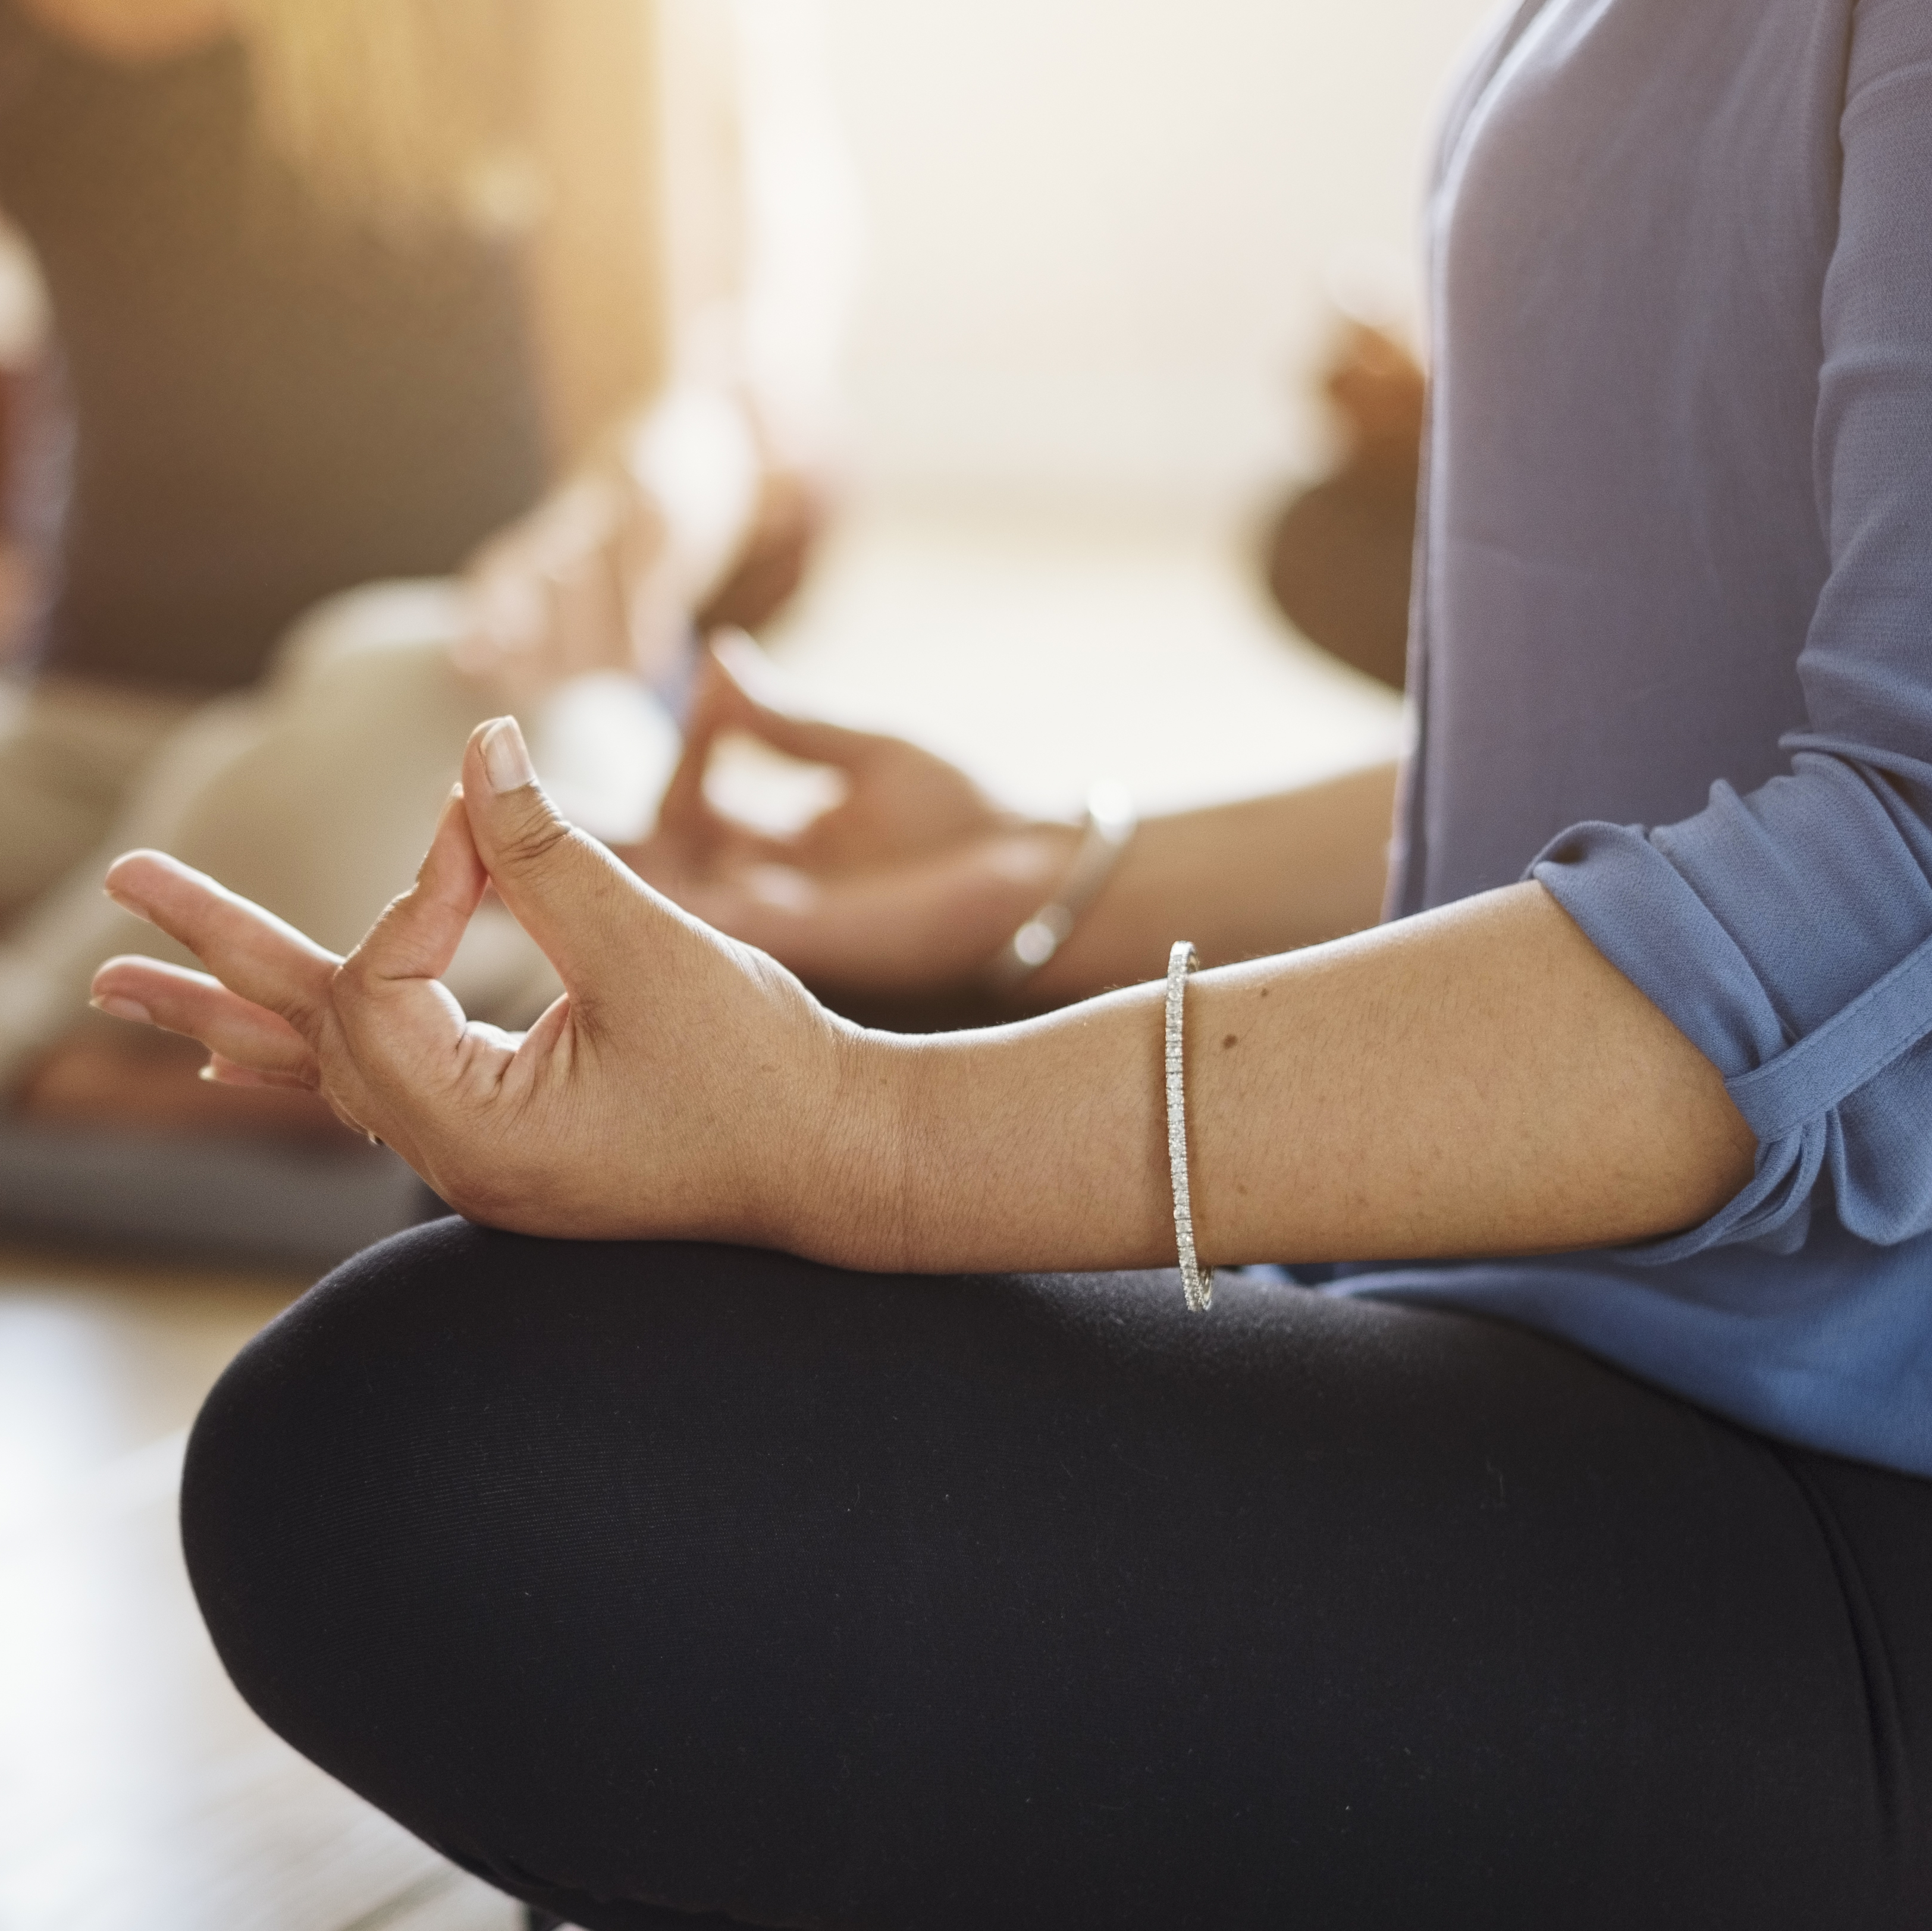 a middle-aged woman sitting in a mindful relaxed yoga pose